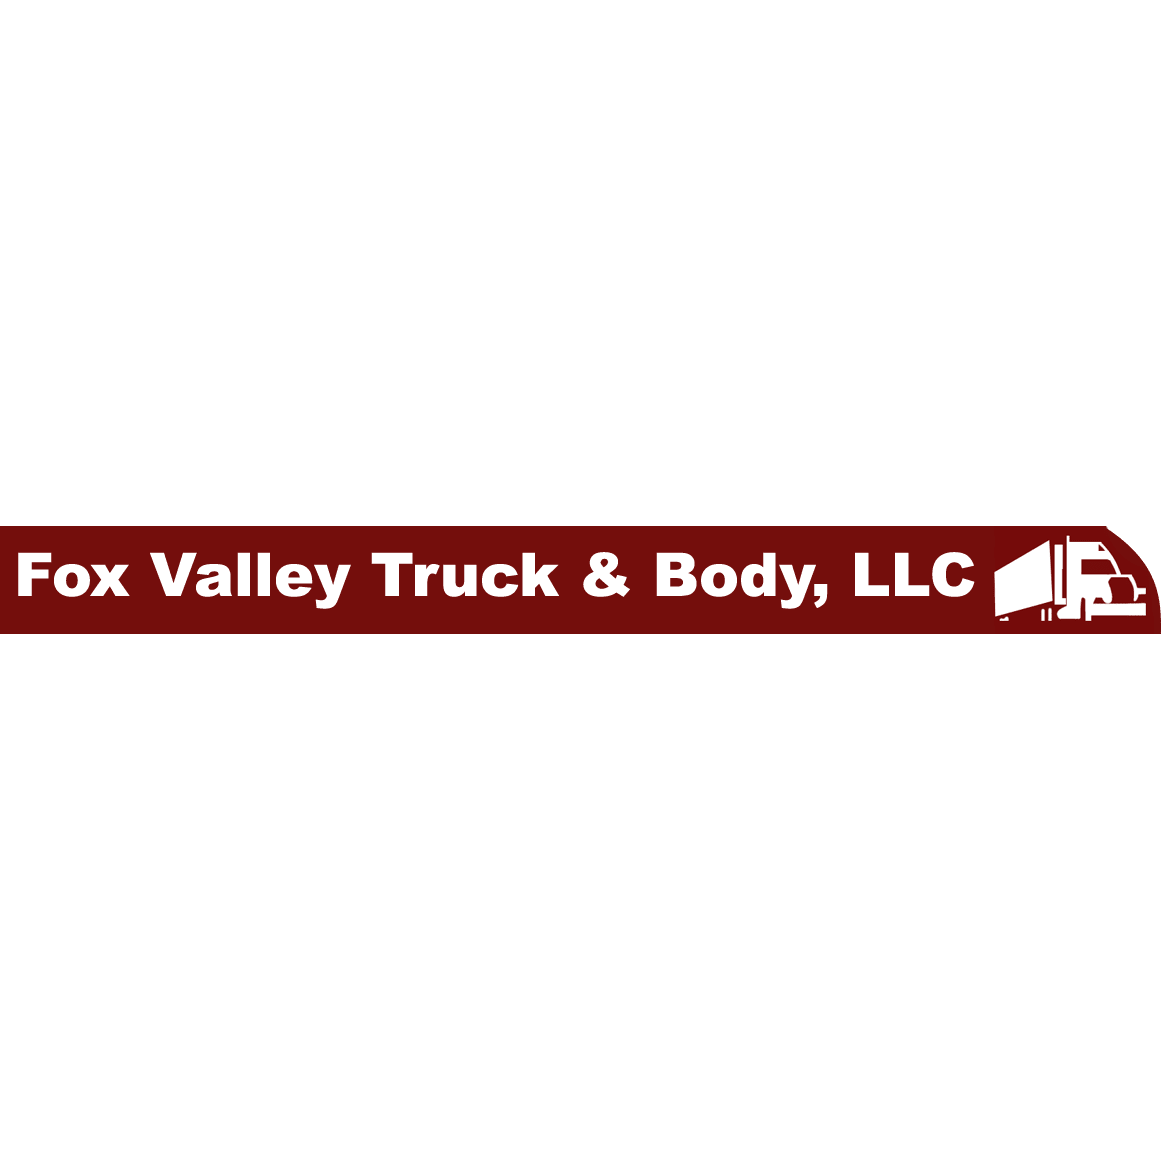 Fox Valley Truck & Body, LLC image 0